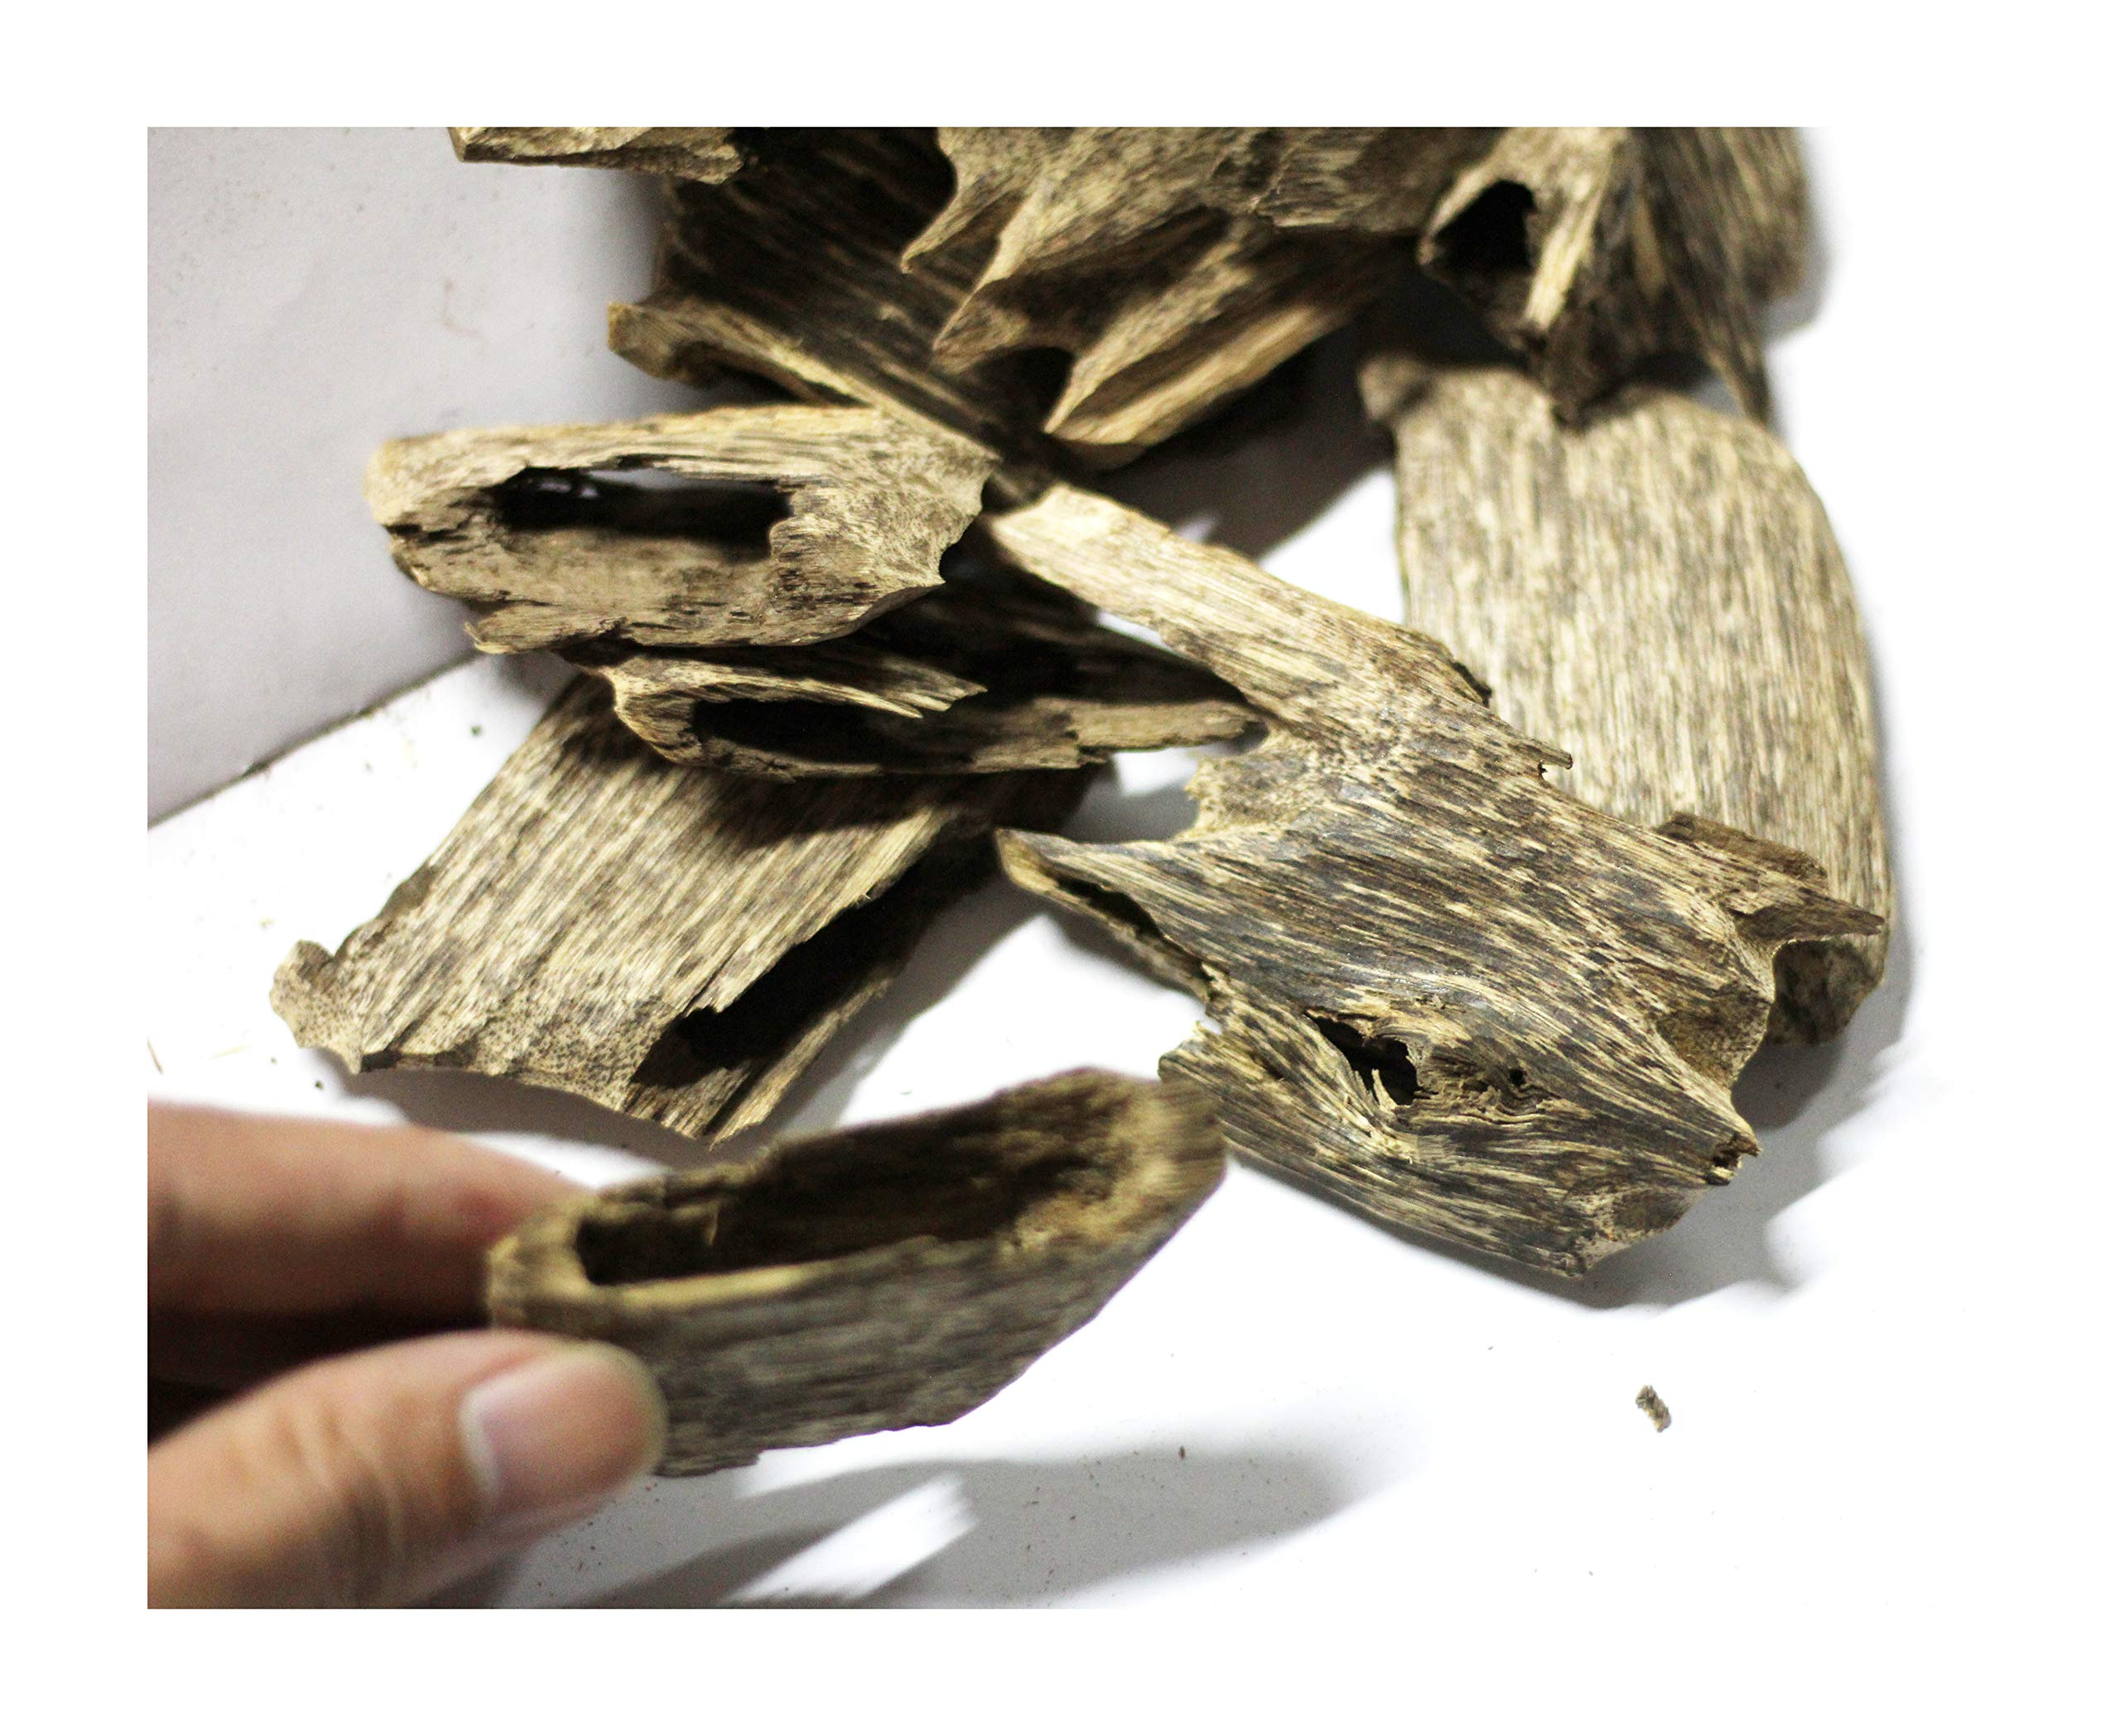 200 gram VIETNAM AGARWOOD CHIP- STEAM YOUR HOUSE-GRADE A by Agarwood-Incense (Image #2)